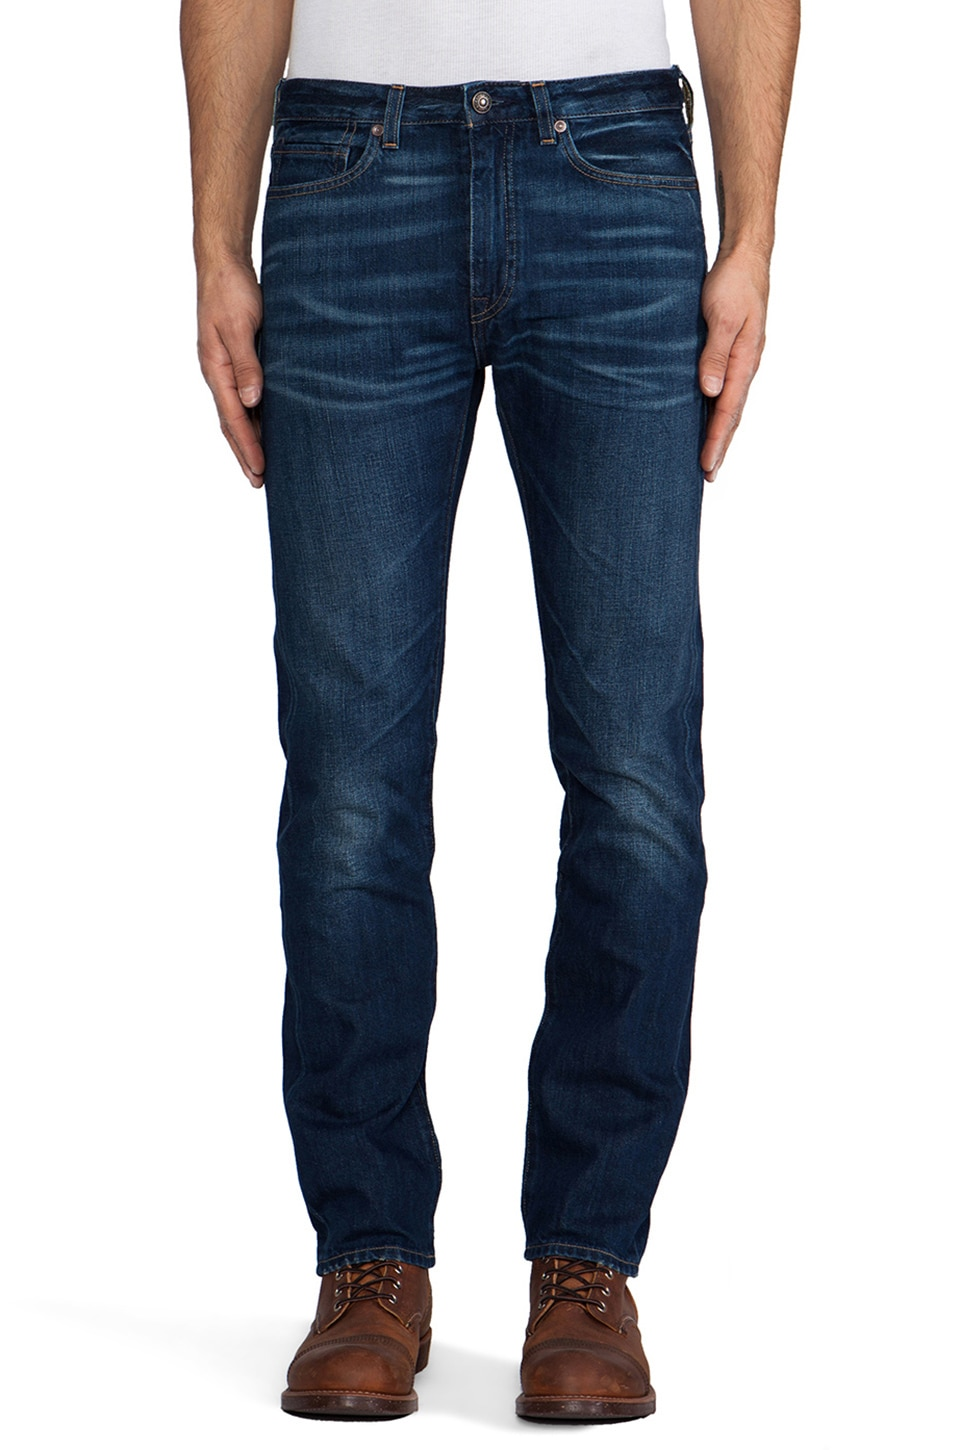 LEVI'S: Made & Crafted Tack Slim in Sea Breeze